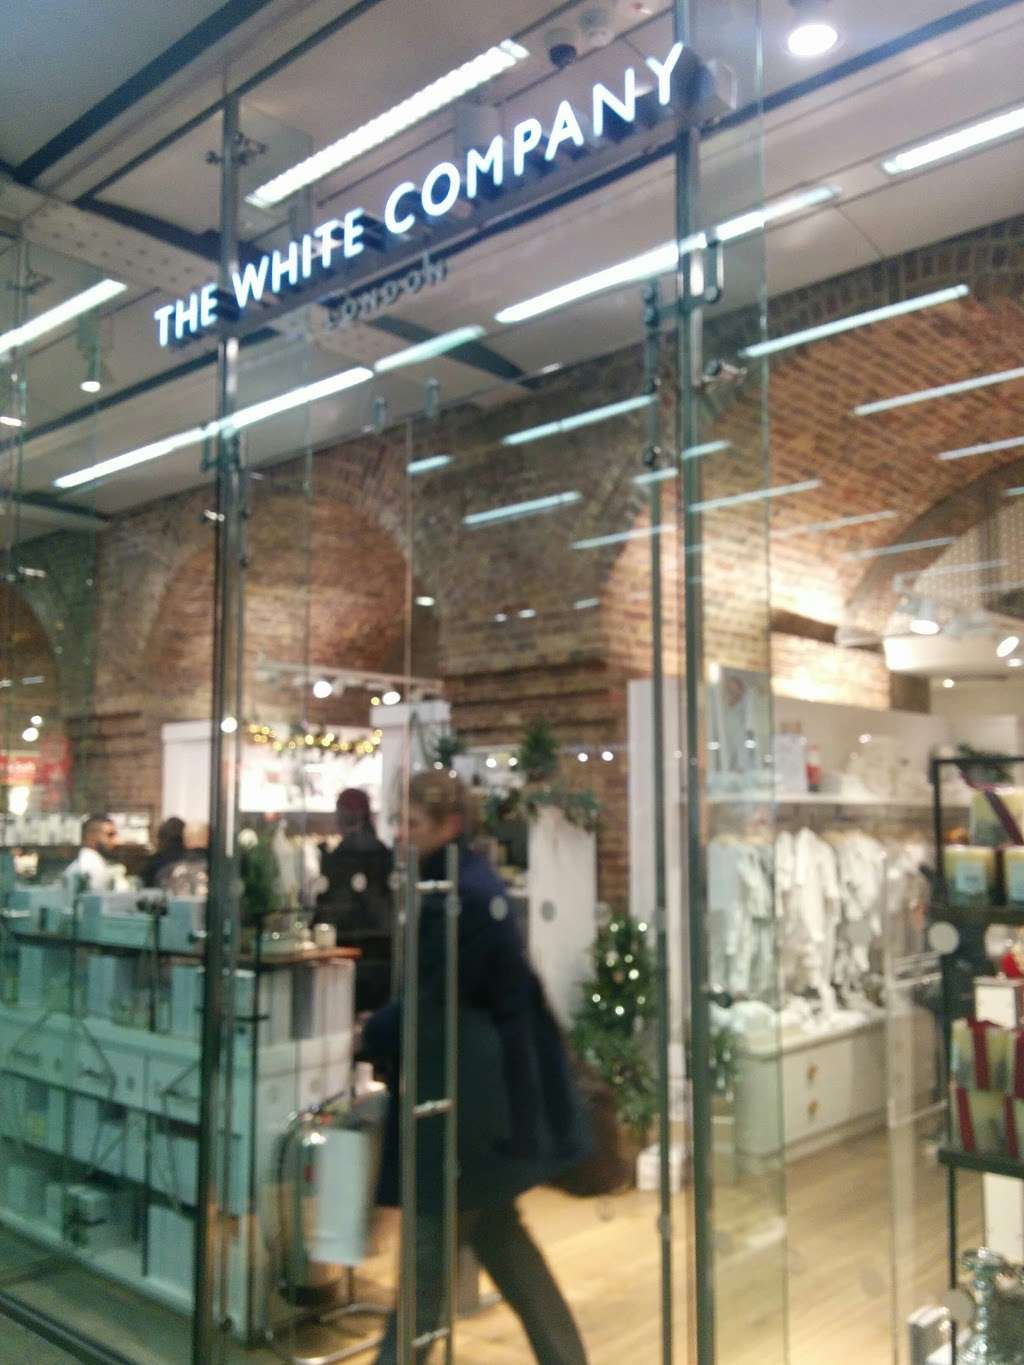 The White Company - Home goods store | The Arcade, Lower